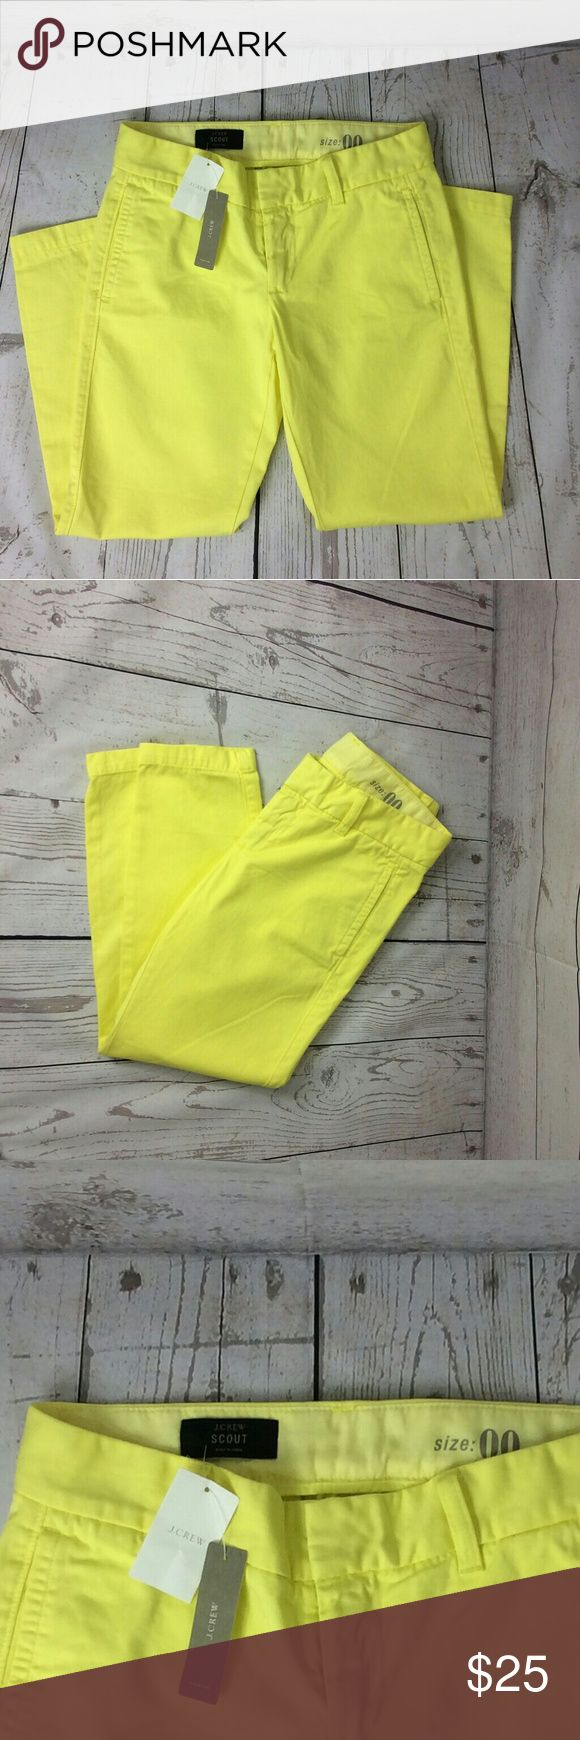 NWT{J. Crew} Neon Yellow scout crop pants Cropped neon yellow pants by J. Crew. Brand new. Size 00. Fun color J. Crew Pants Ankle & Cropped